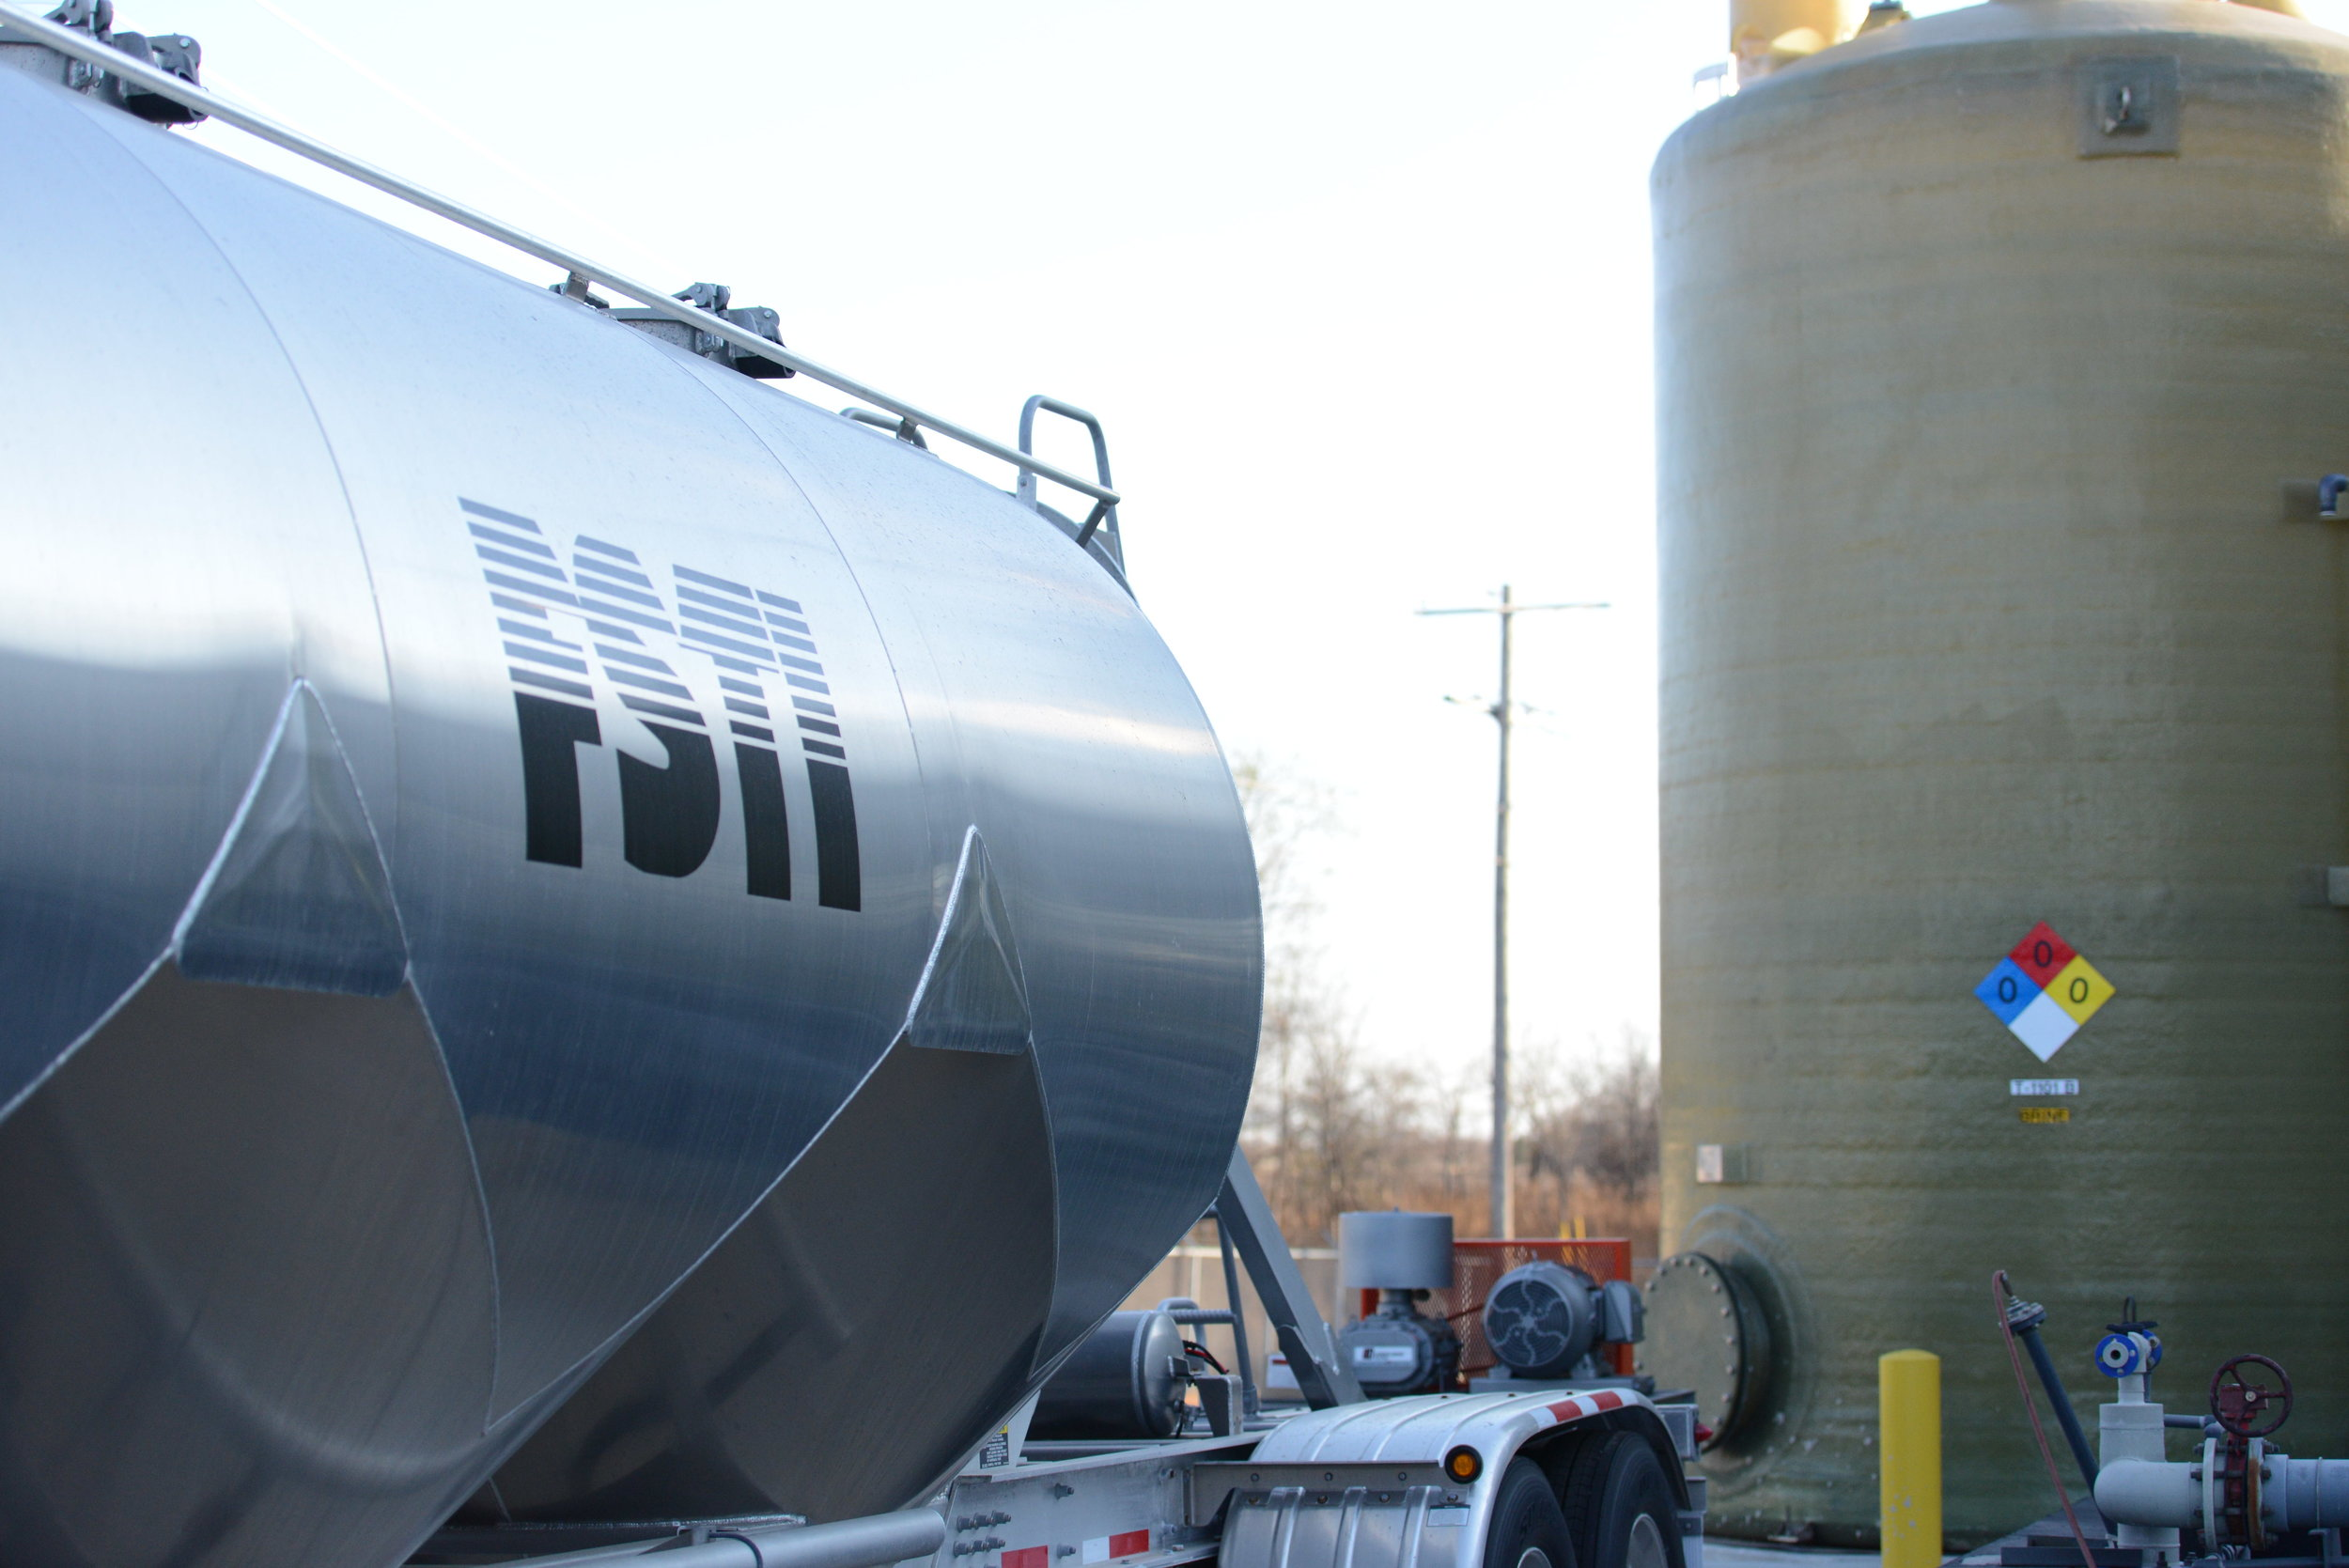 Follansbee, WV - Rail AccessTransloading, Dilute, and Blending CapabilitiesBulk DeliveryFSTI Owned and Operated